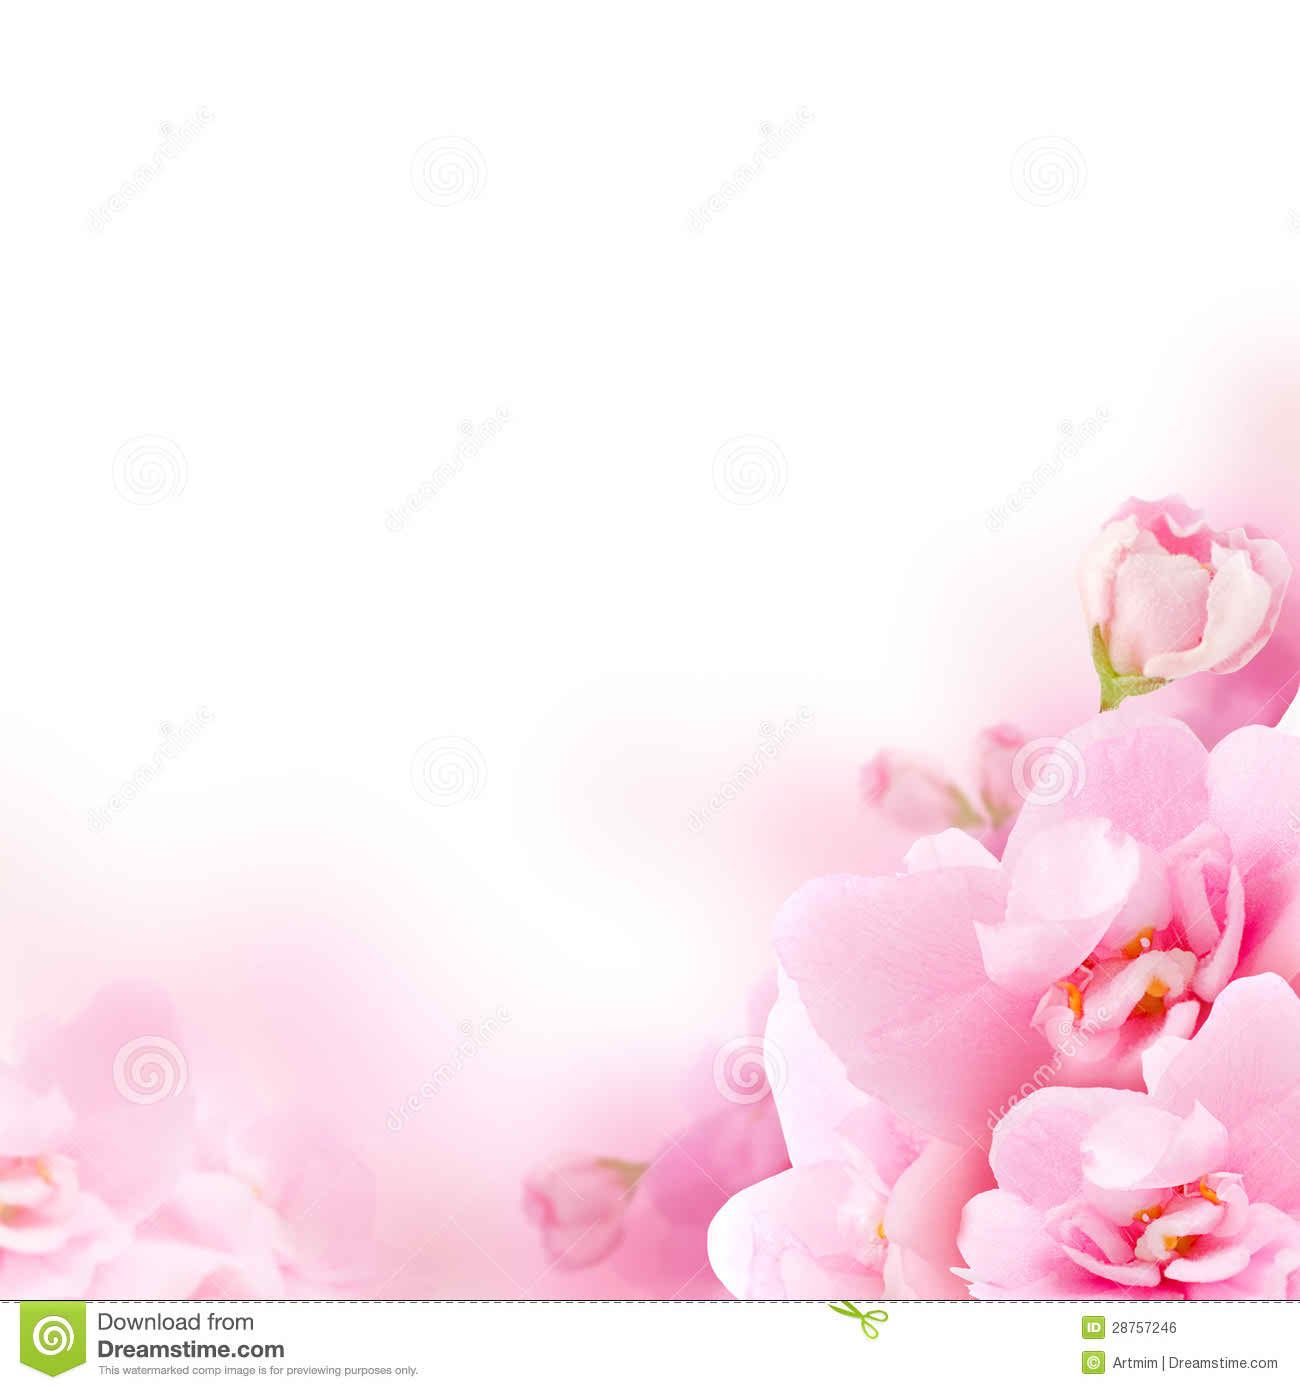 Free pictures of pink flowers banner transparent stock Pink Flowers Backgrounds - WallpaperSafari banner transparent stock